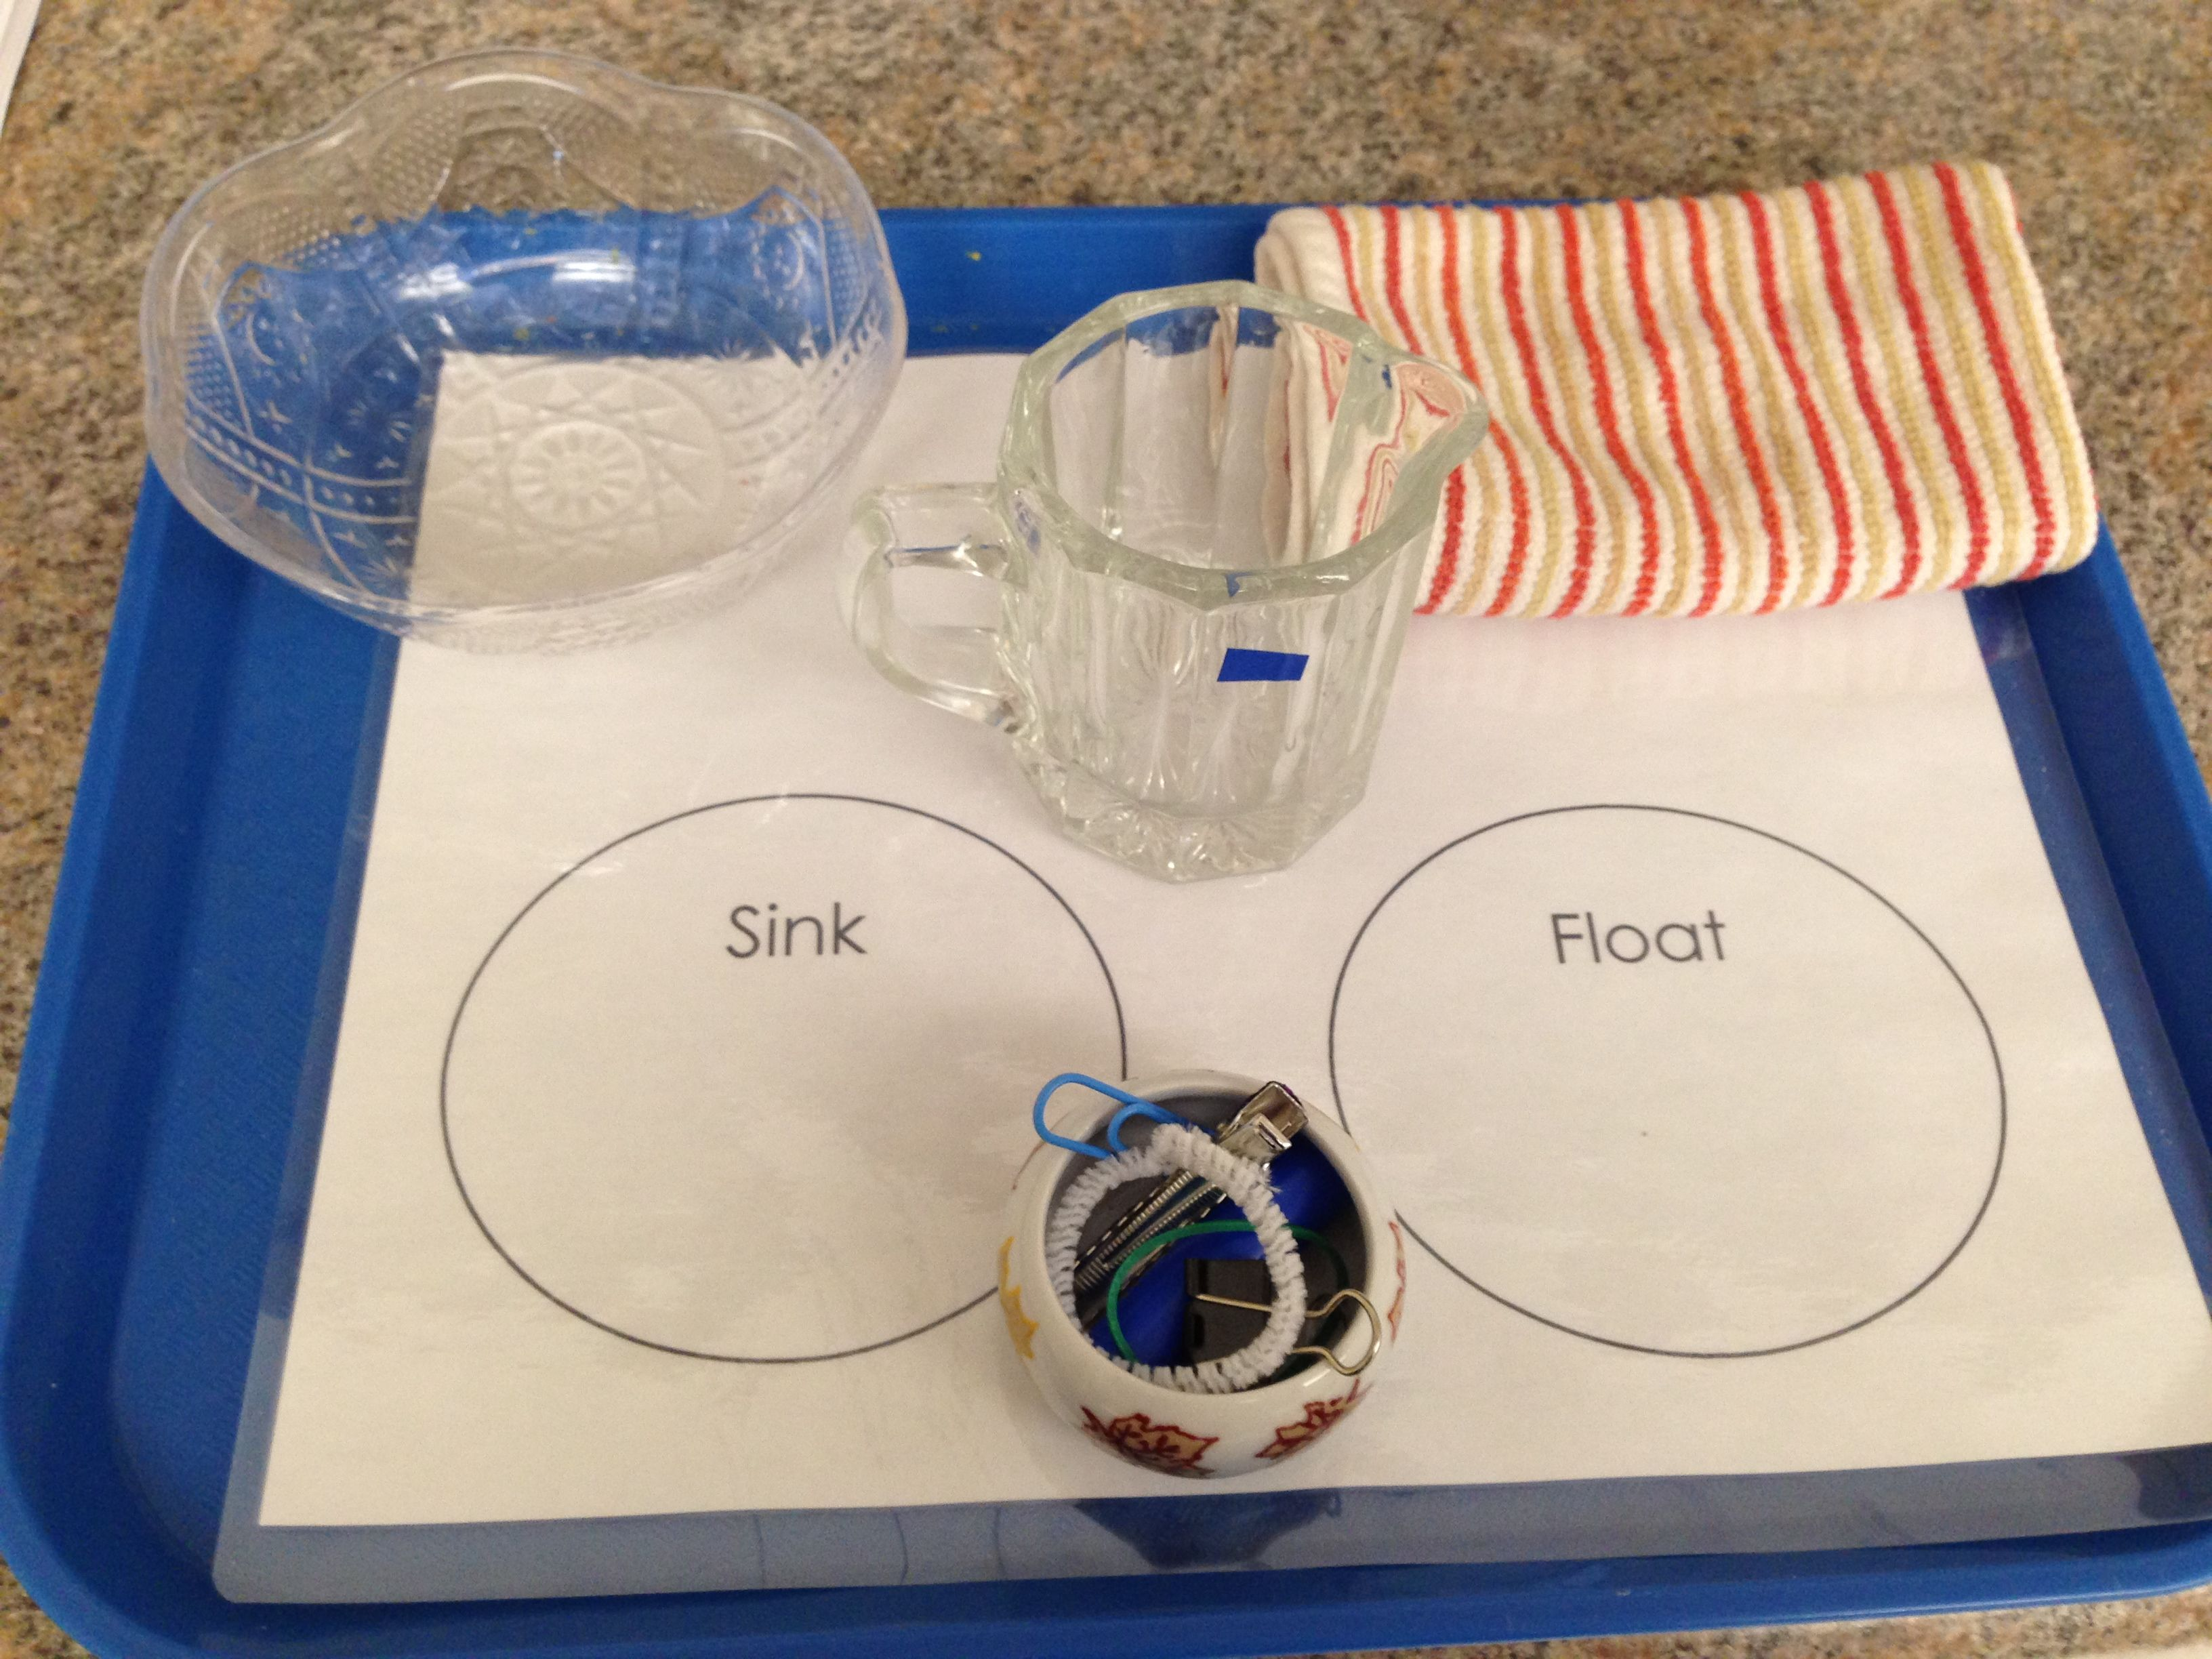 Sink And Float On A Tray Ready For Use Promotes